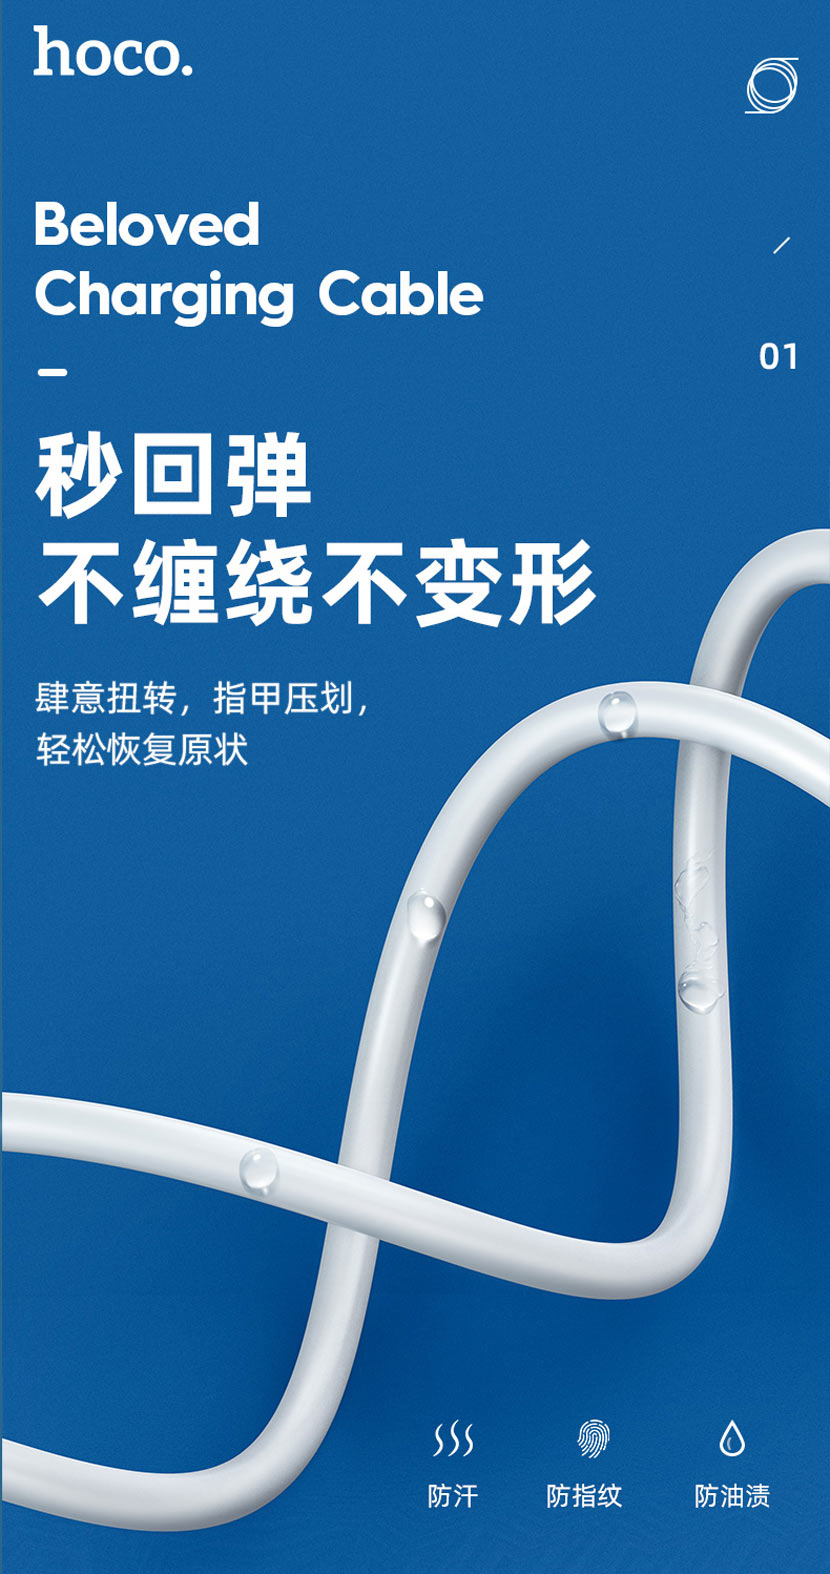 hoco news x49 beloved charging data cable elastic cn